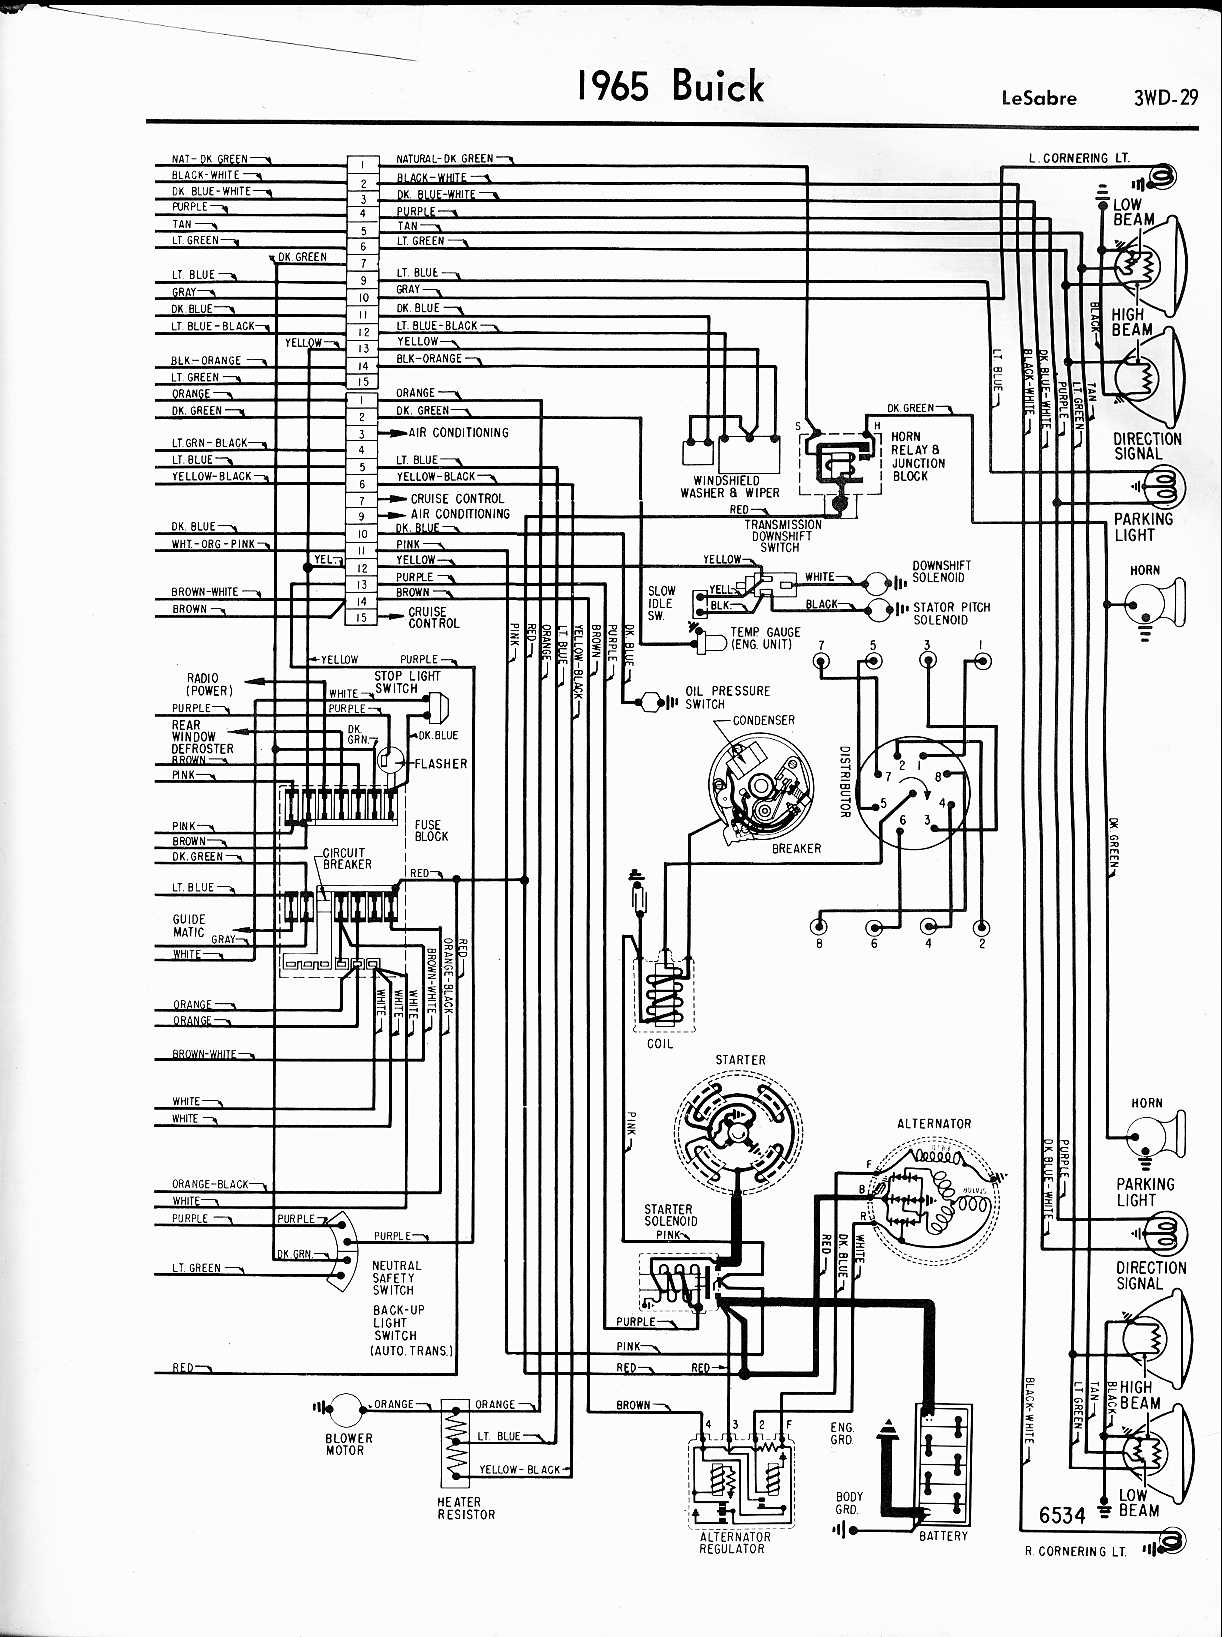 Awesome Datsun Roadster Wiring Diagram Get Free Image About Wiring Diagram Renstra Mohammedshrine Wiring Digital Resources Renstramohammedshrineorg